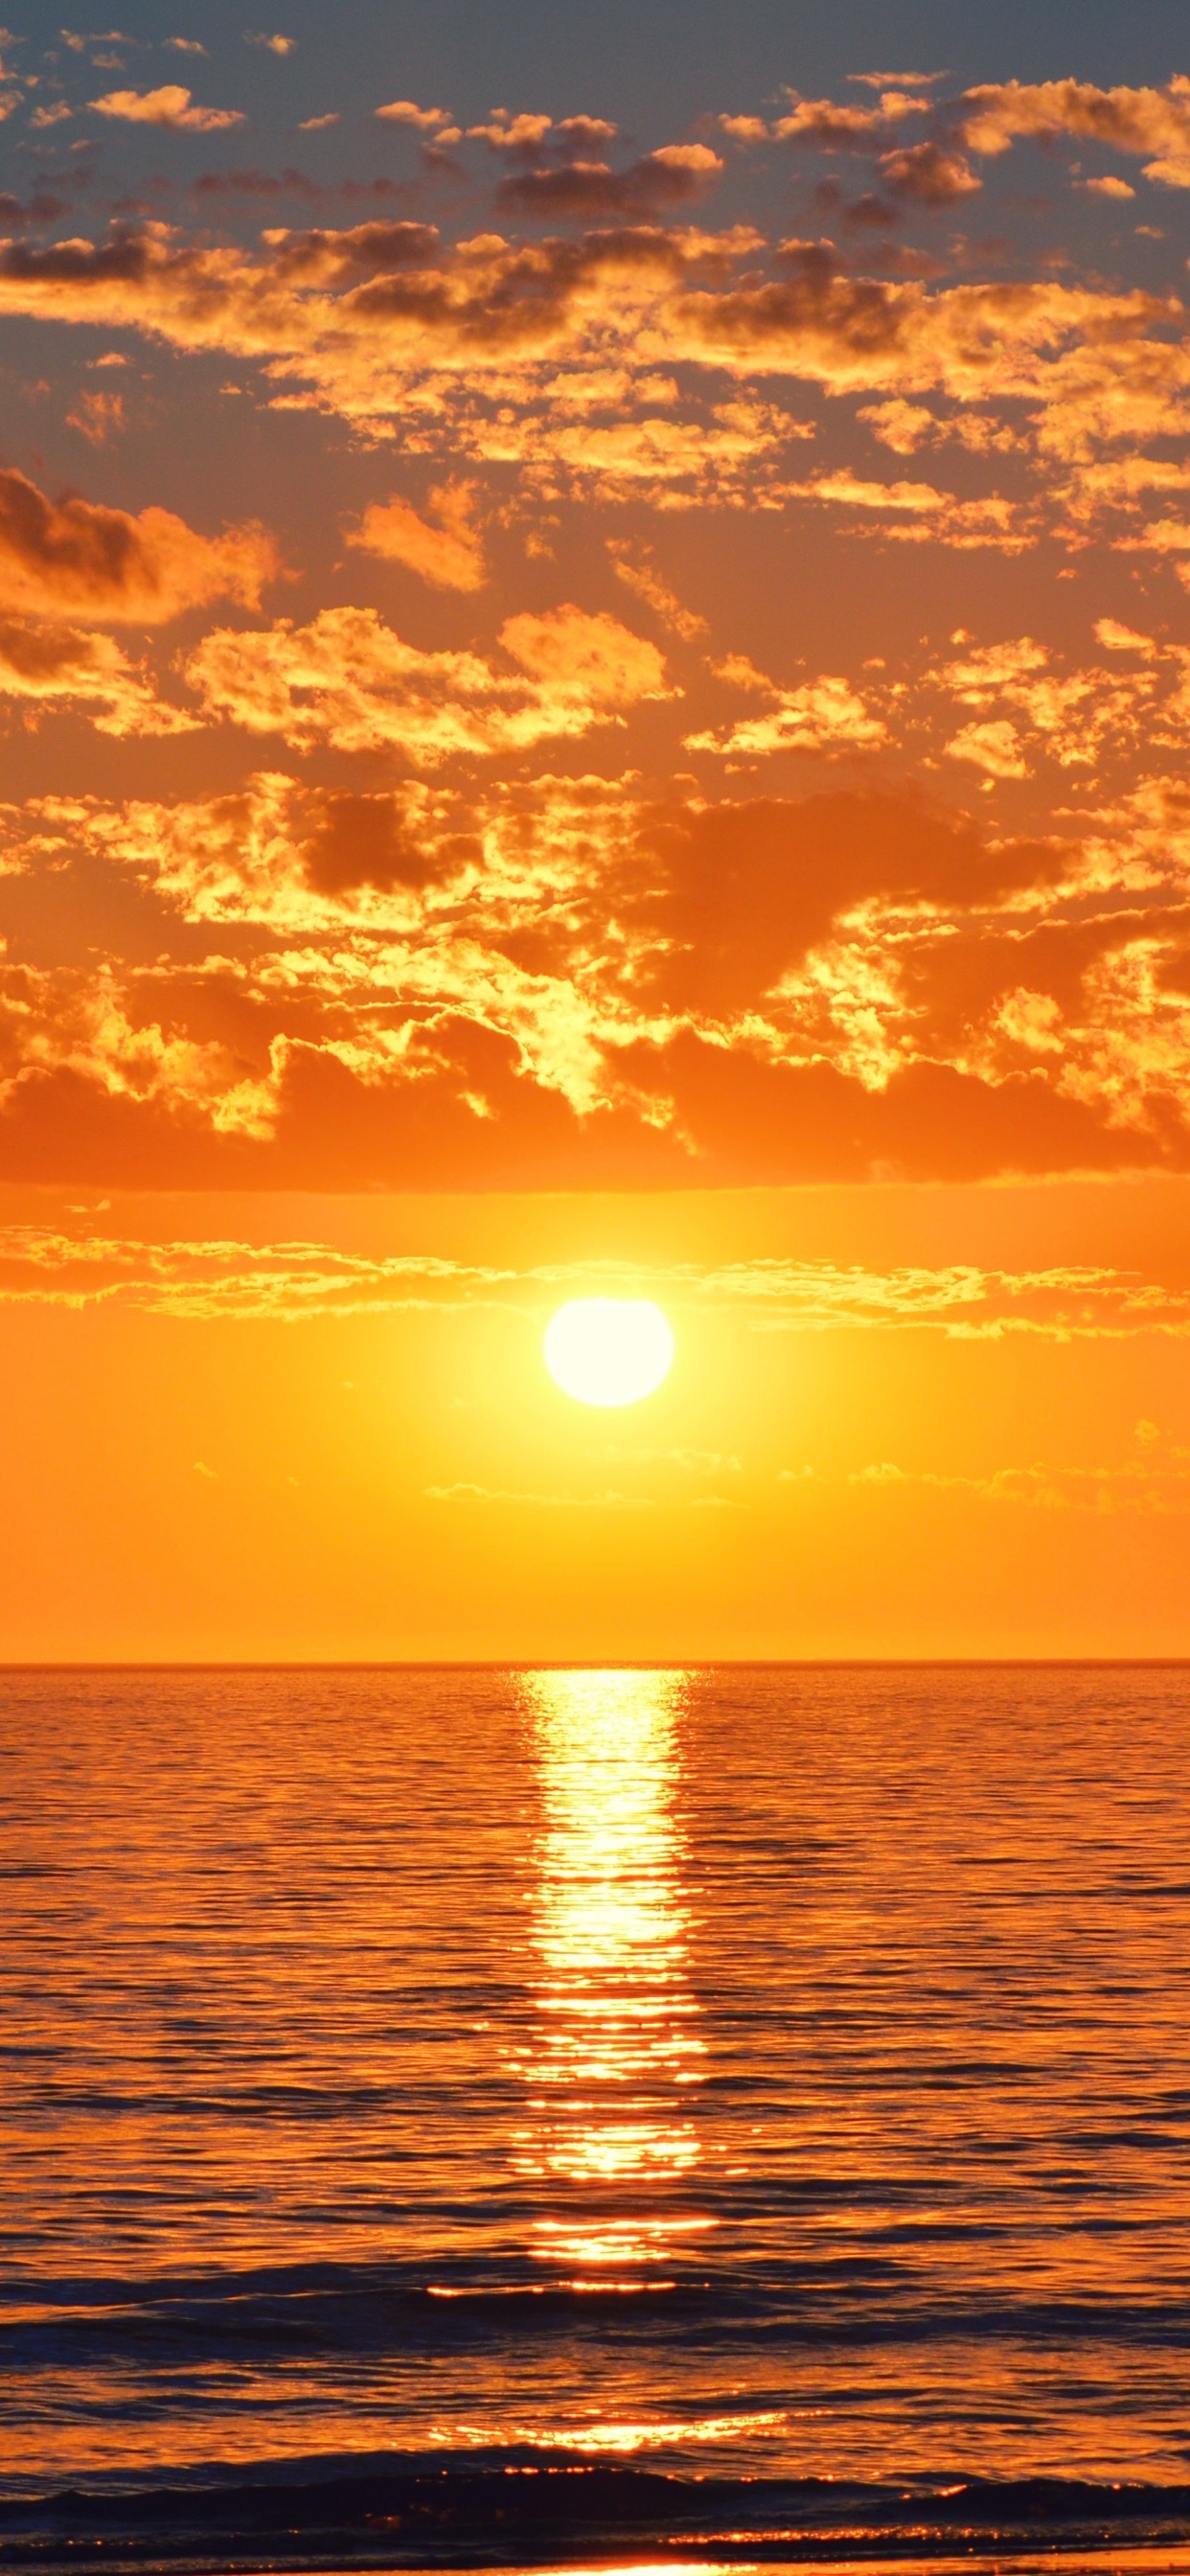 Sunsets Over The Water Wallpapers For Iphone - Beautiful Ocean Real Sunset - HD Wallpaper